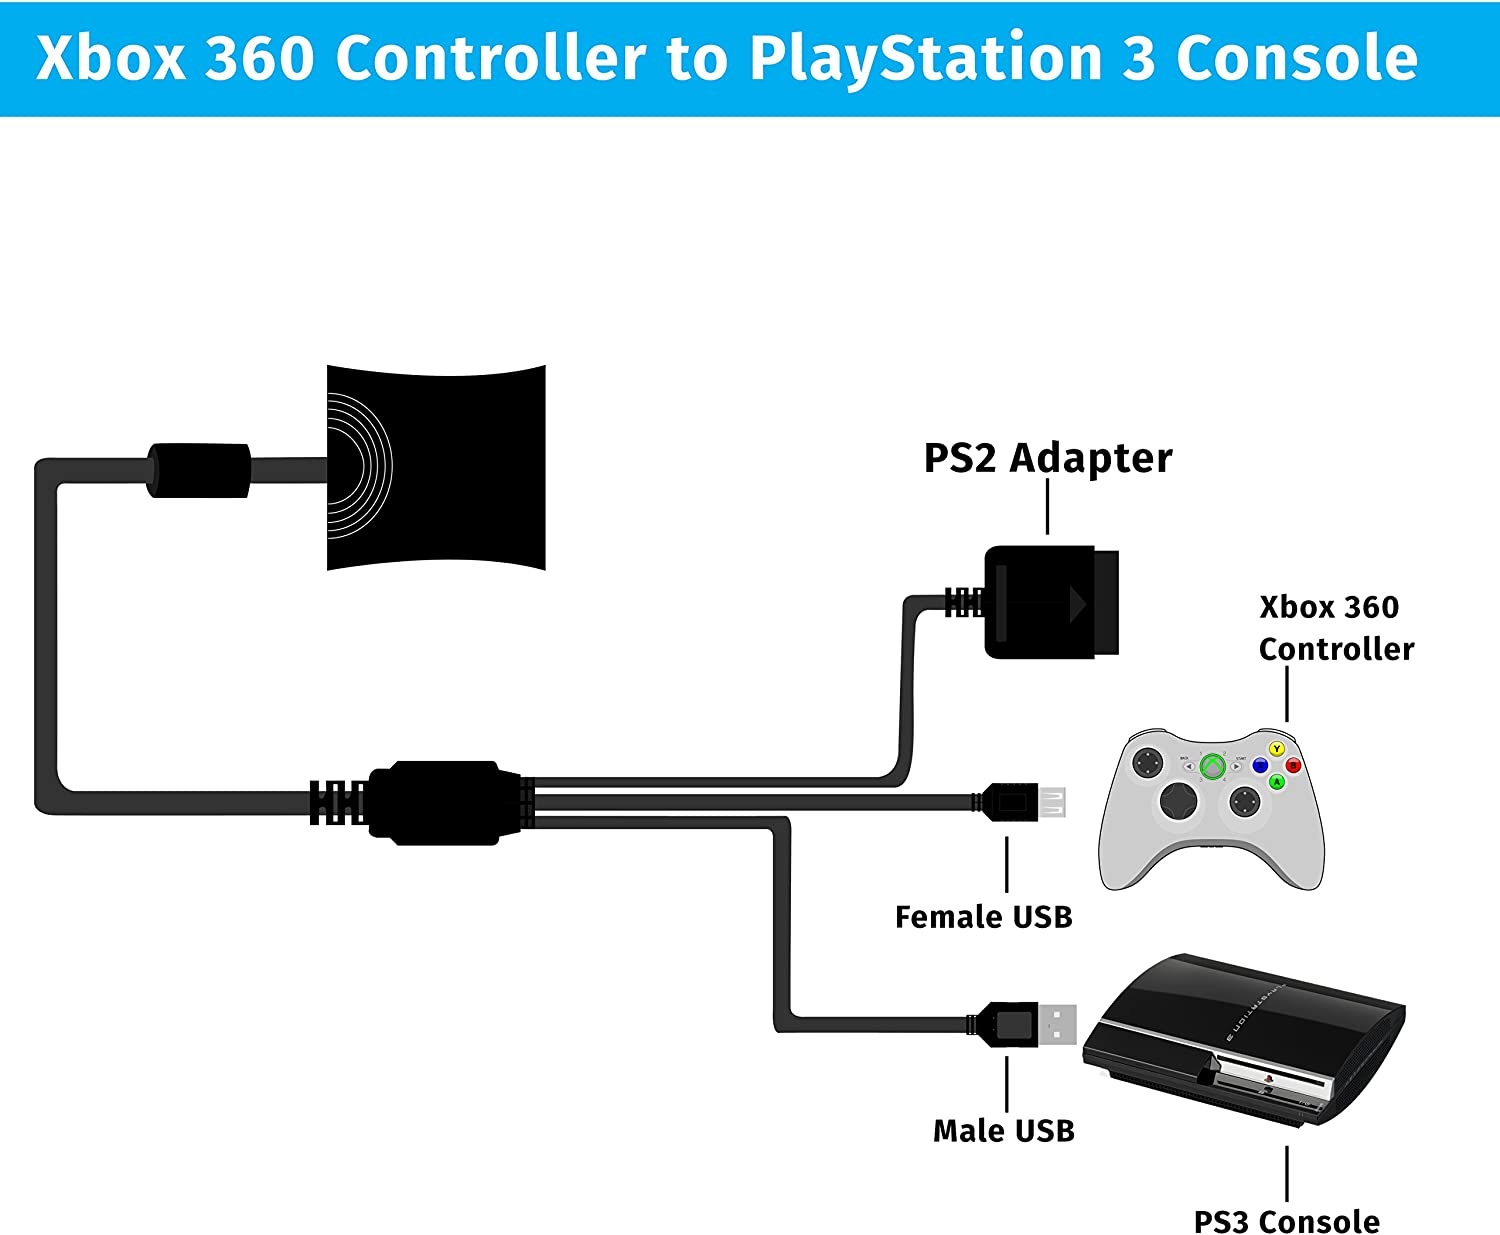 amazon com xbox 360 to playstation 2 3 controller adapter use xbox controller to usb connector amazon com xbox 360 to playstation 2 3 controller adapter use xbox 360 wired controllers on ps2 and ps3 and ps3 controllers on xbox 360 console video